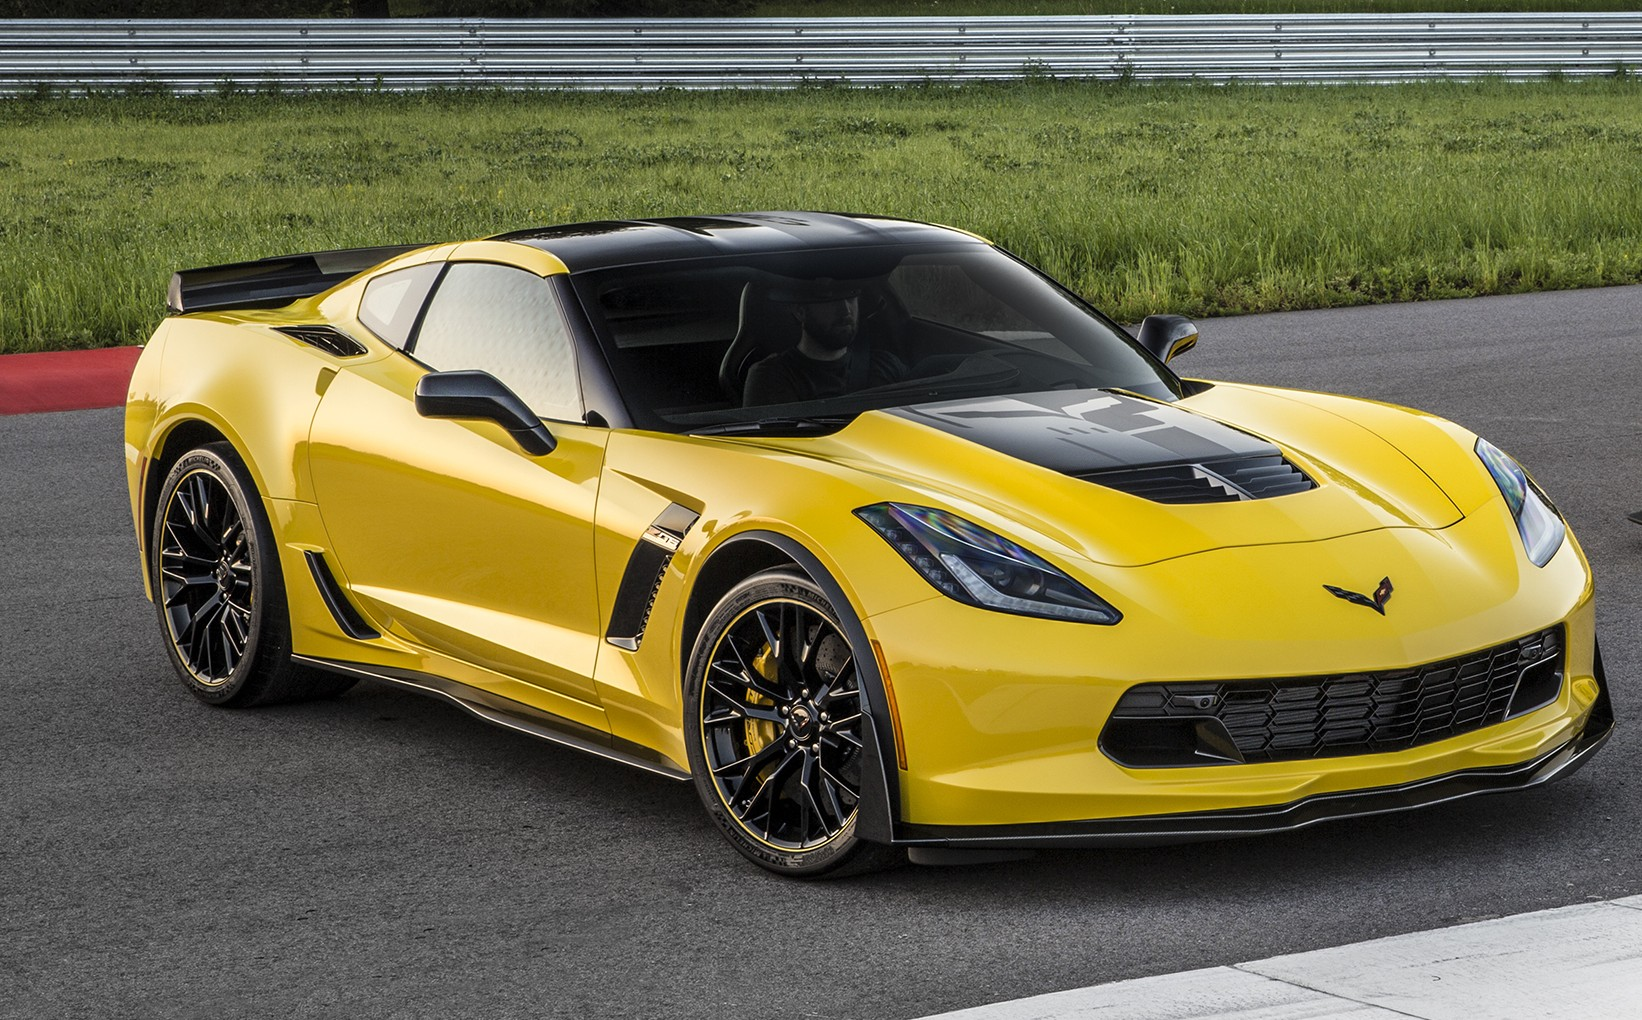 General At Tires >> CHEVROLET INTRODUCES 2016 CORVETTE Z06 C7.R EDITION - myAutoWorld.com